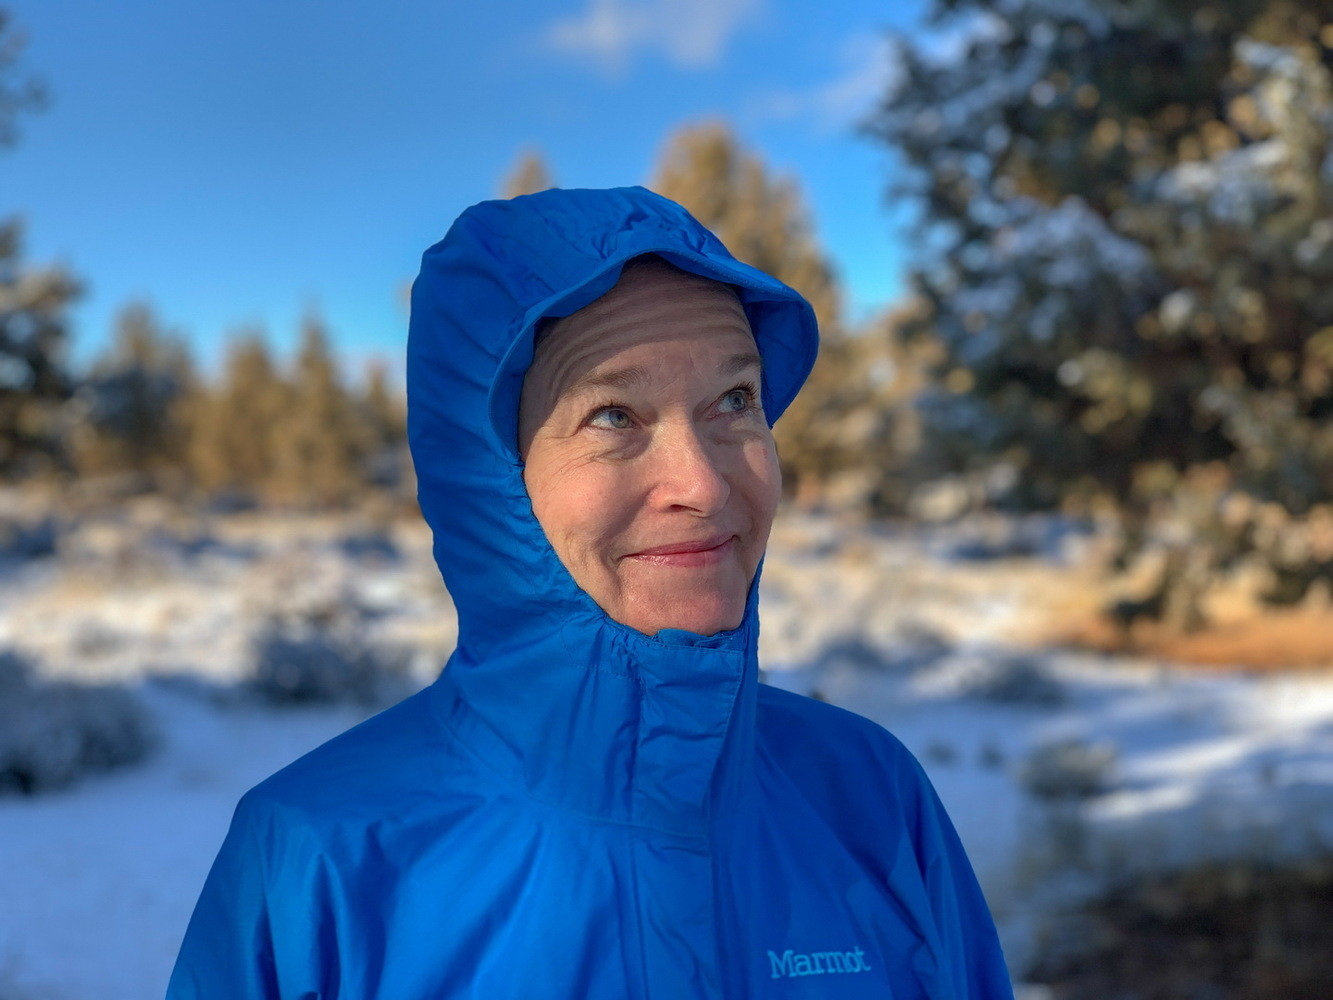 The Marmot Precip rain jacket features a brim along its hood.   Photo by Robert Curzon